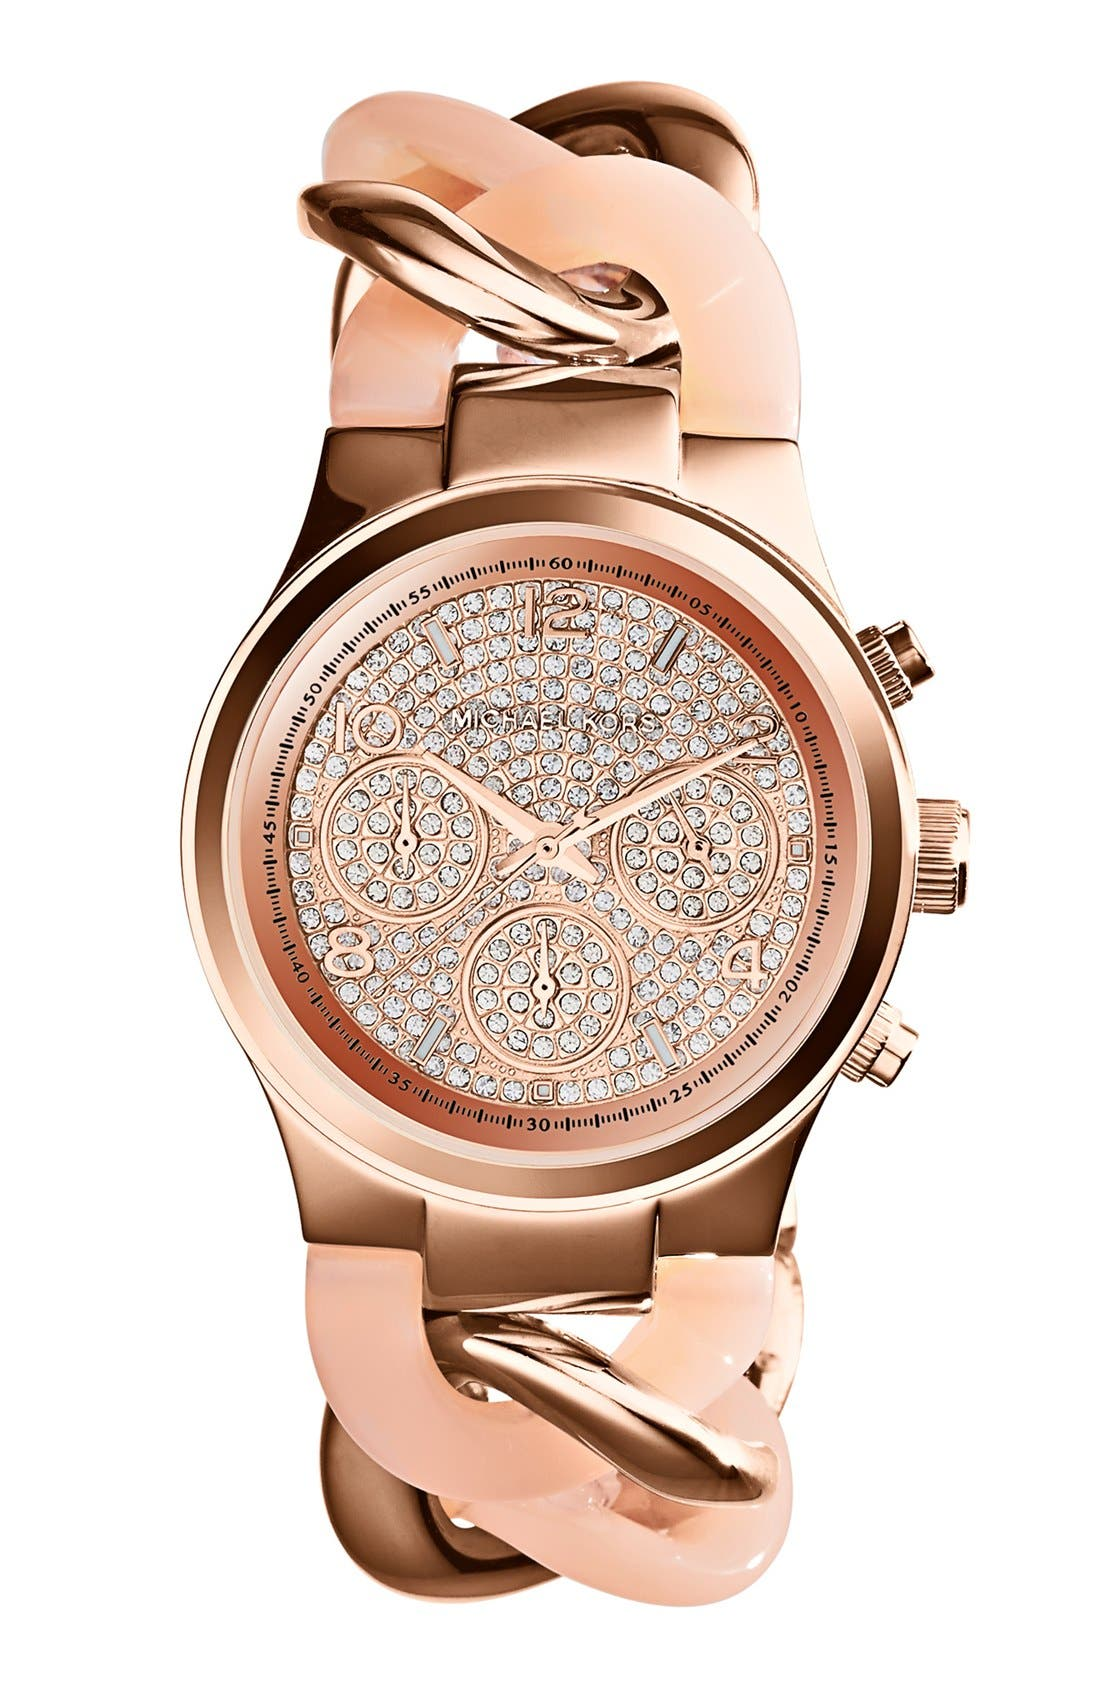 Main Image - Michael Kors 'Runway' Pavé Dial Chronograph Link Bracelet Watch, 38mm